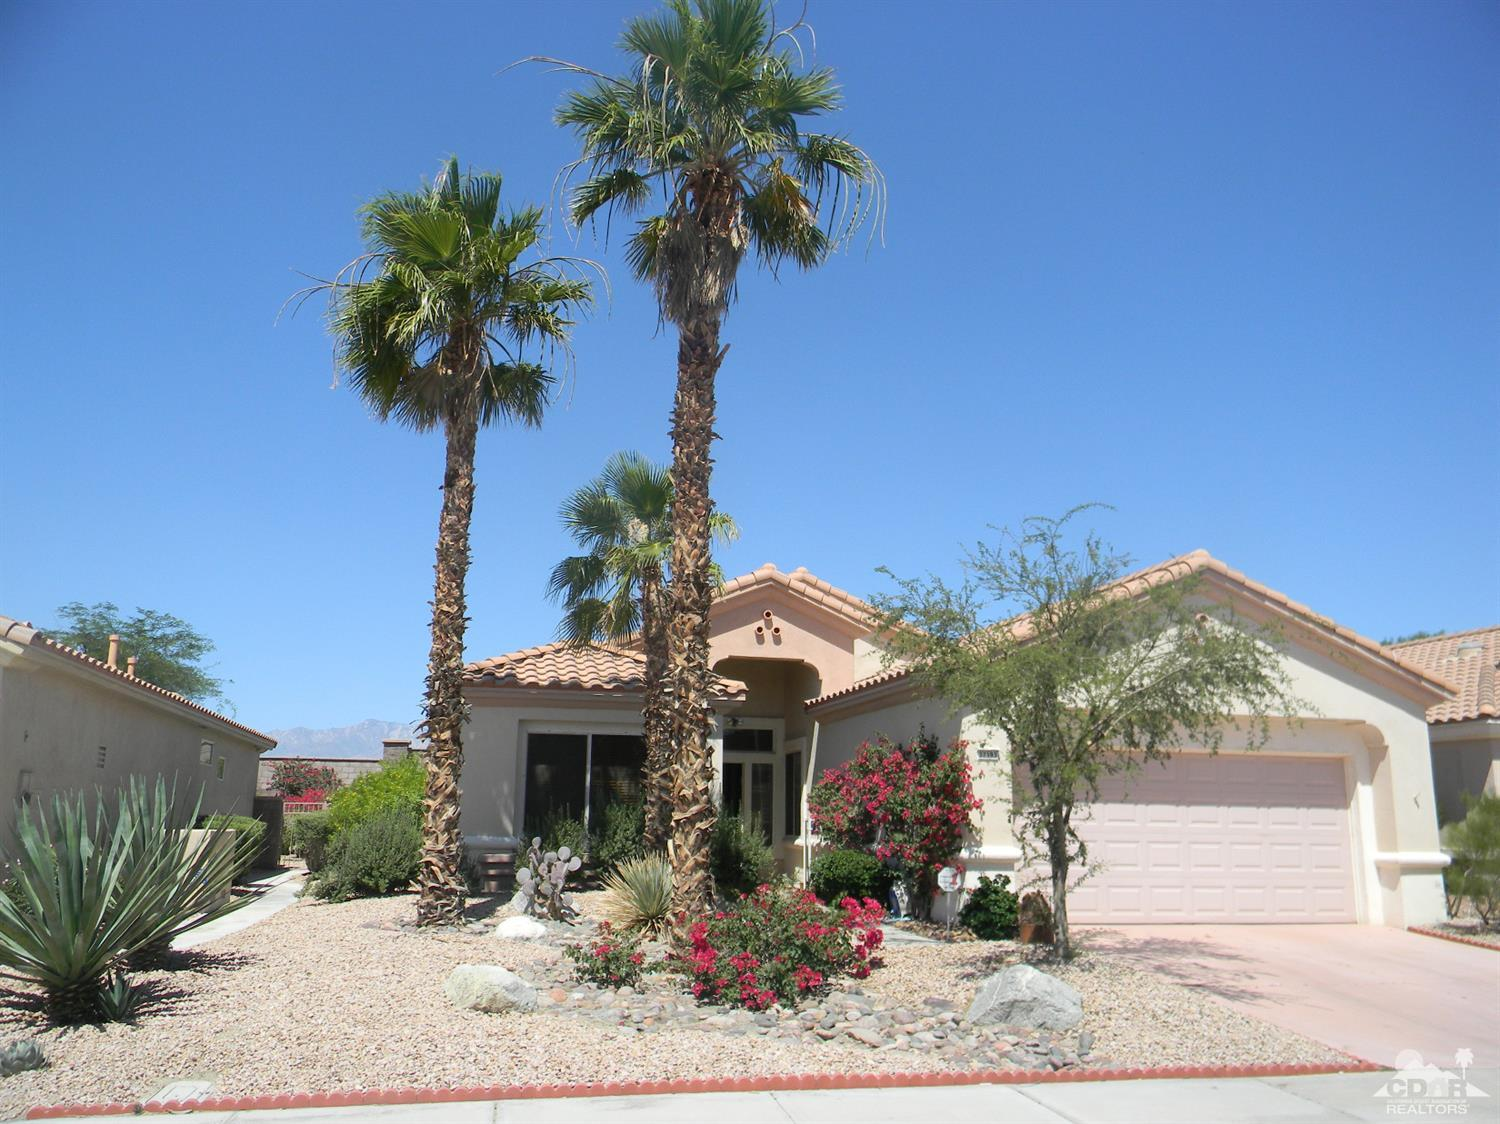 sun city palm desert homes for sale 250 001 to 300 000